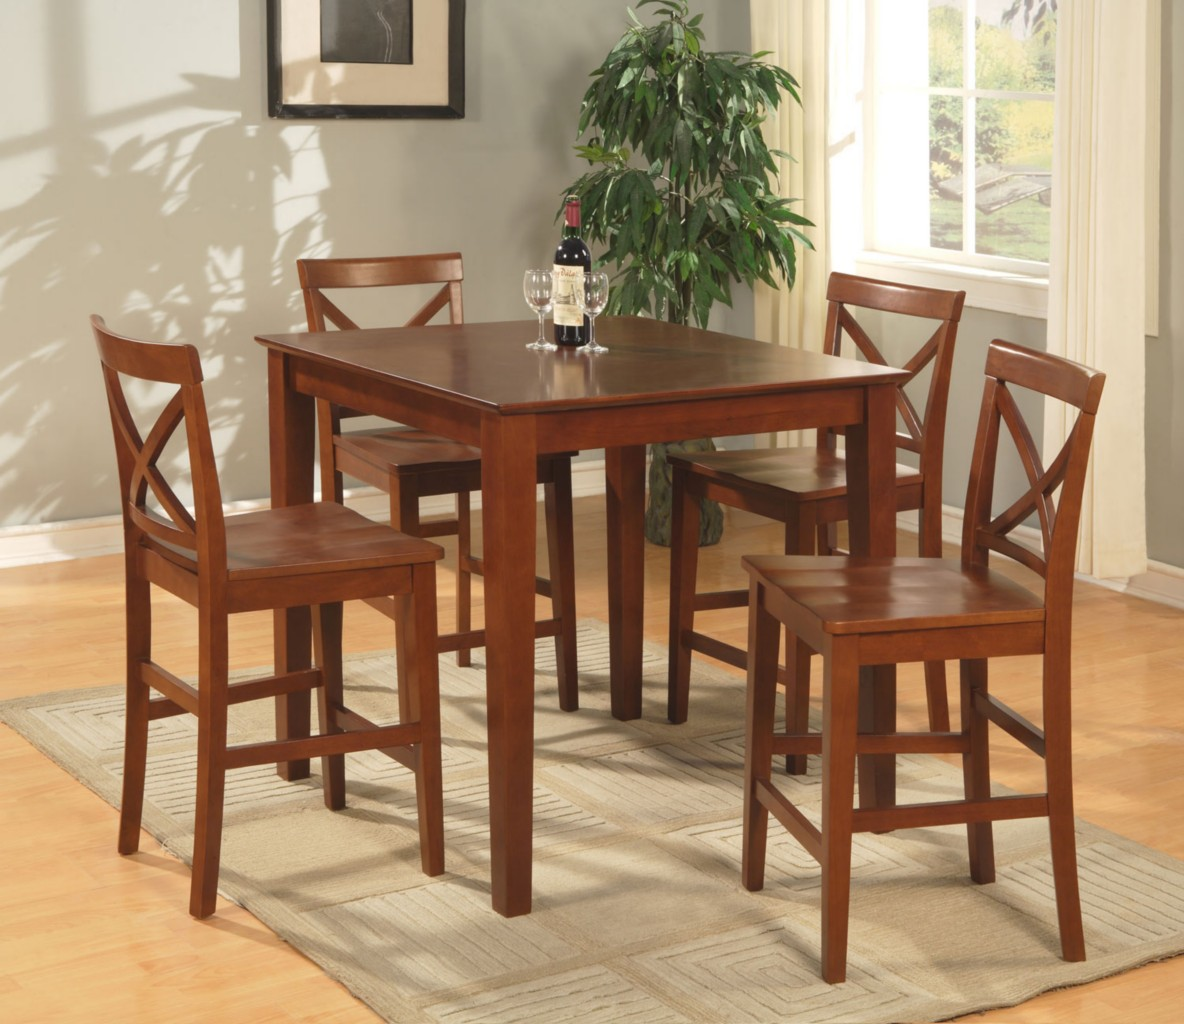 kitchen tables more kitchen tables and chairs wooden kitchen stools photo 2